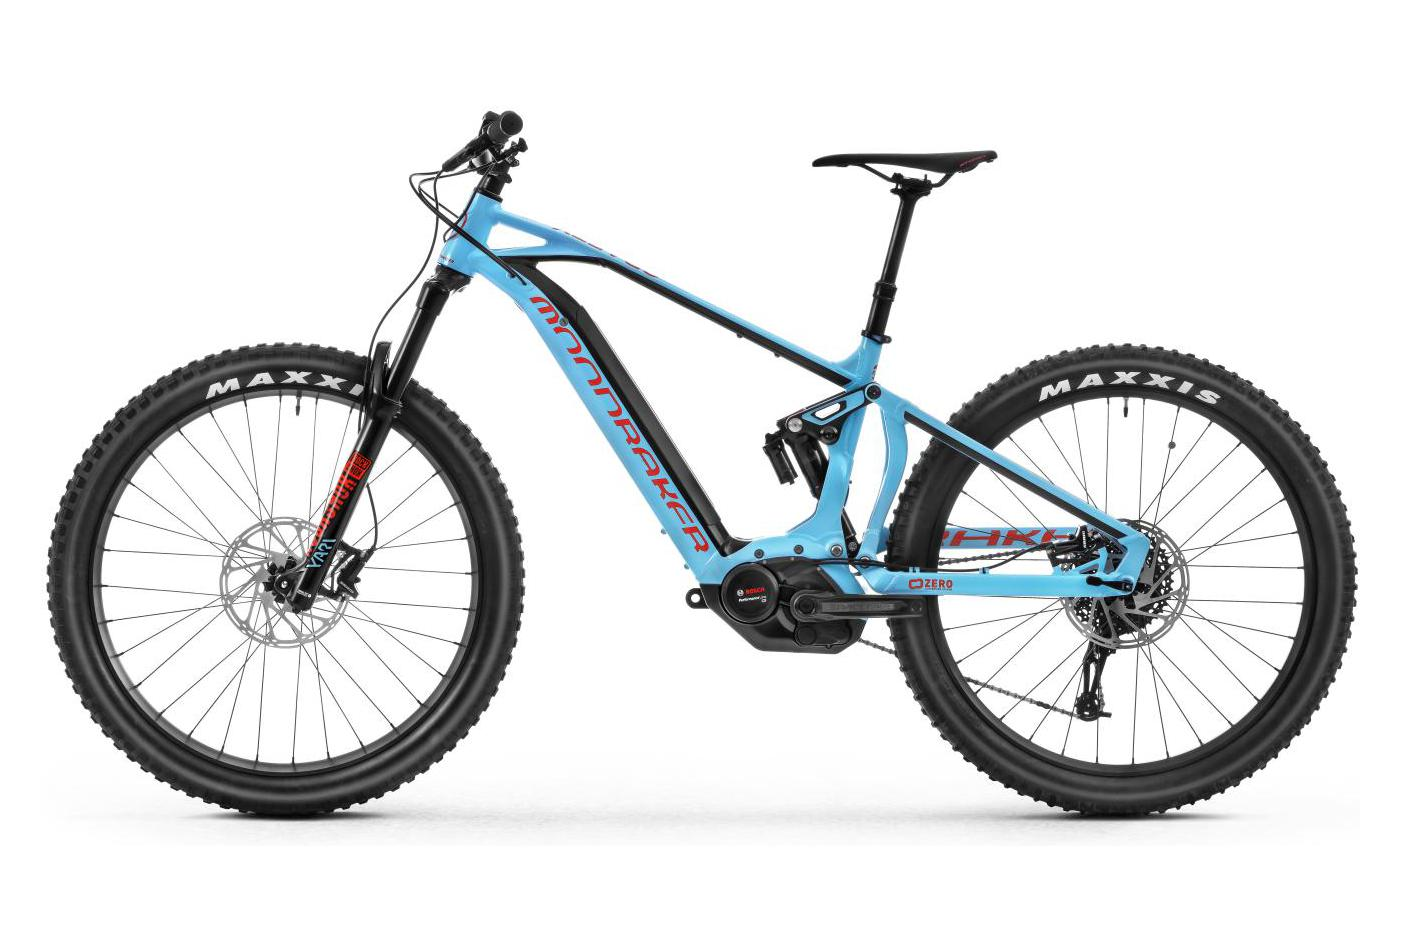 vtt tout suspendu mondraker e crafty r sram gx 10v bleu. Black Bedroom Furniture Sets. Home Design Ideas